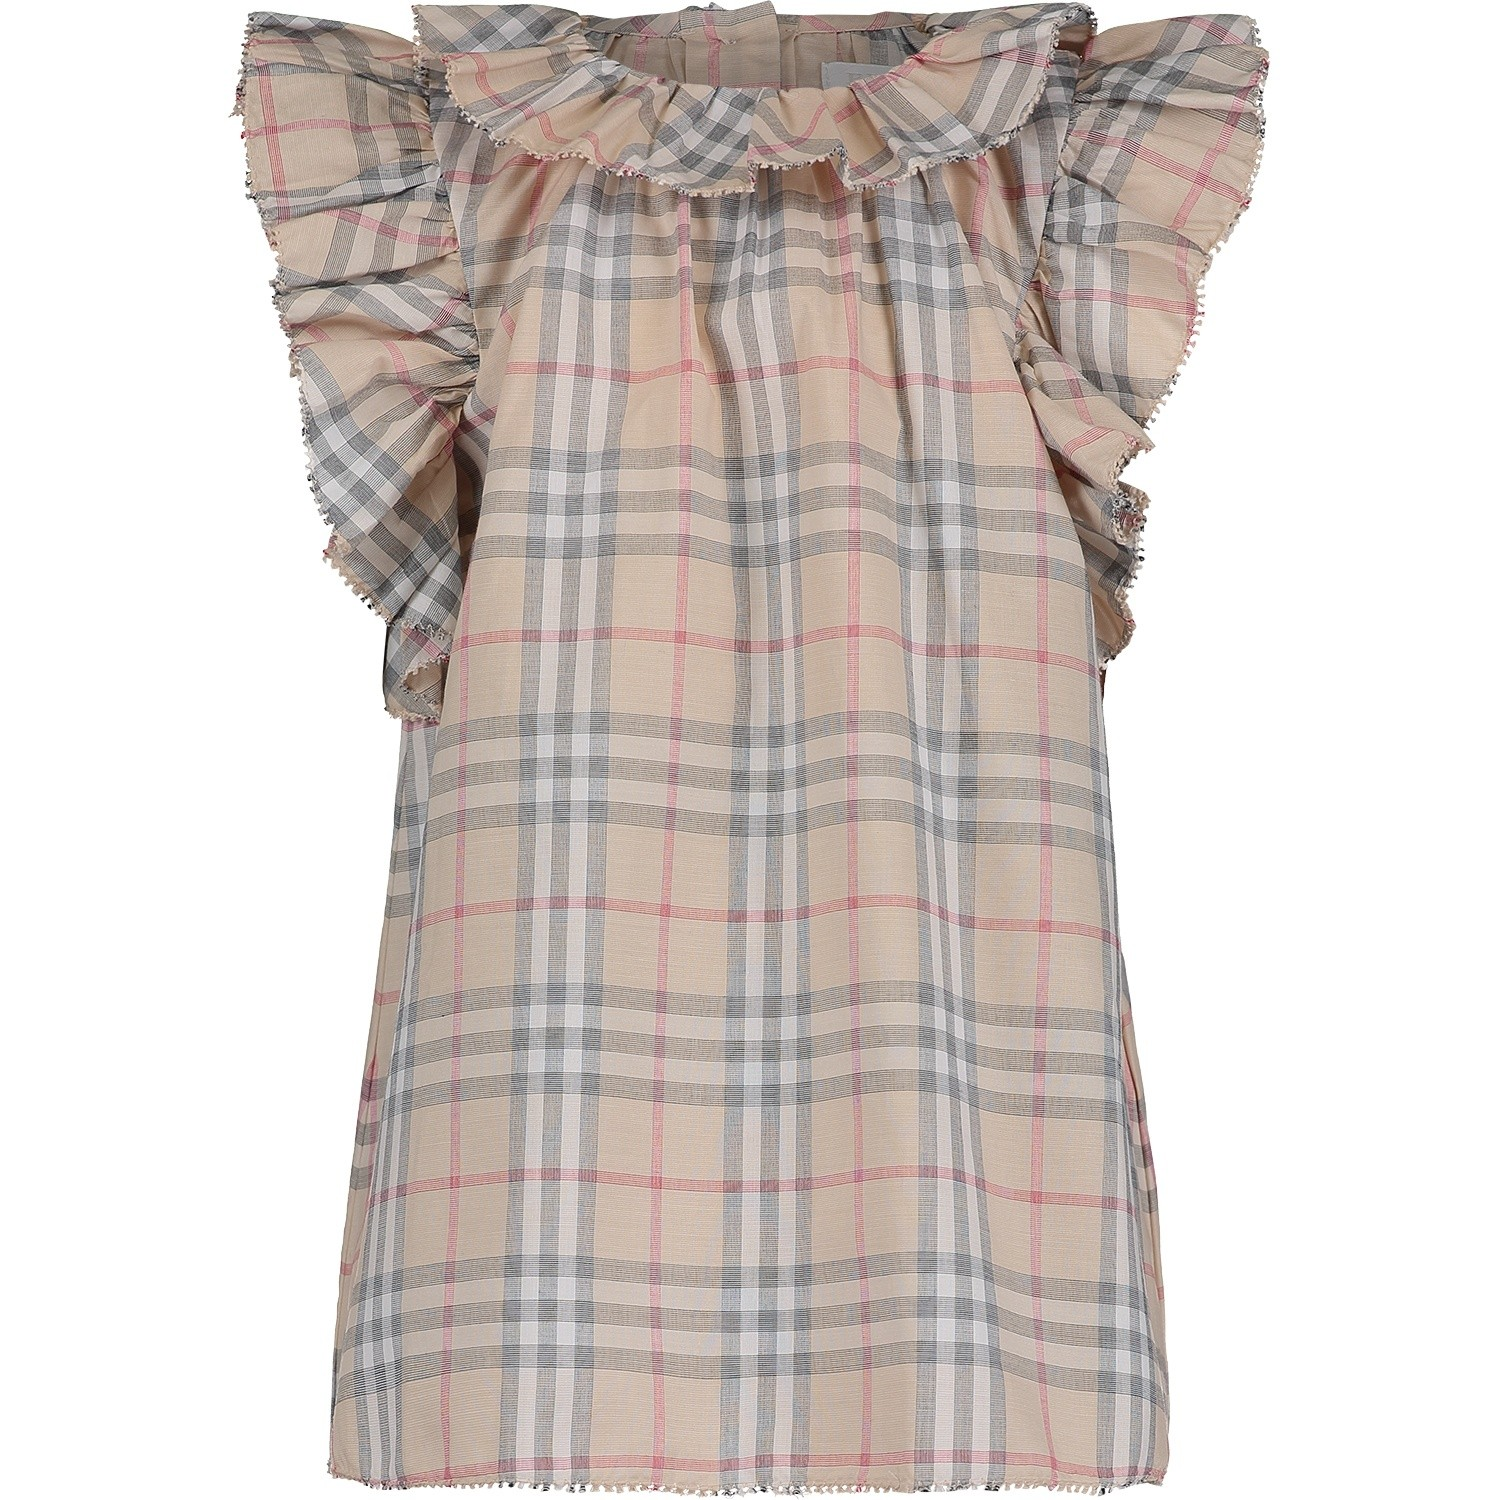 Picture of Burberry 8005338 baby dress light beige